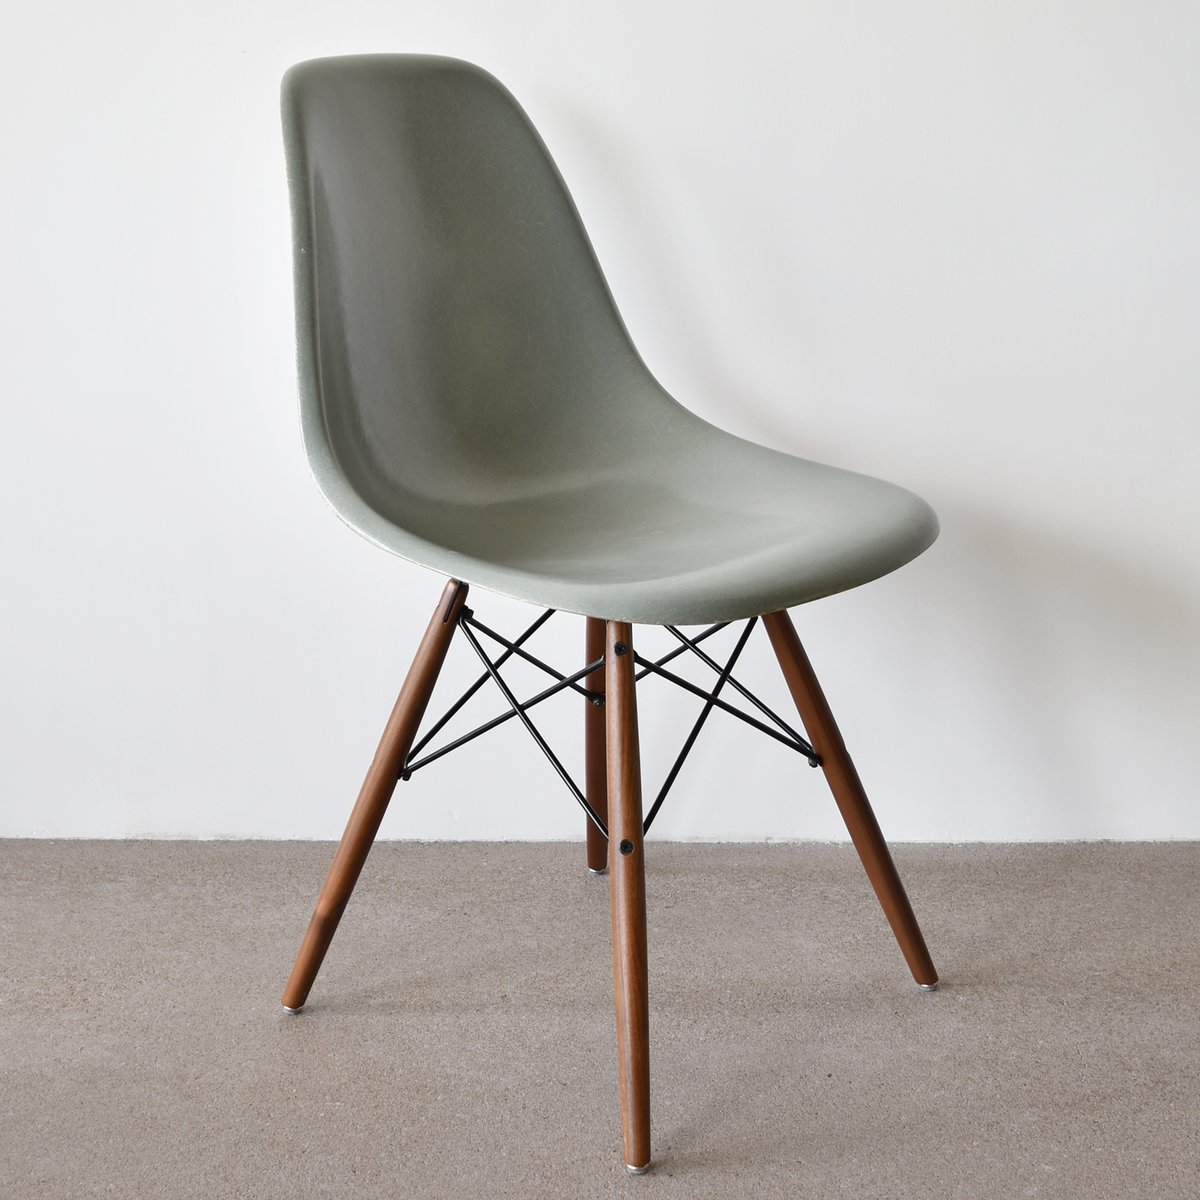 vintage dsw chair in sea foam green by charles and ray eames for